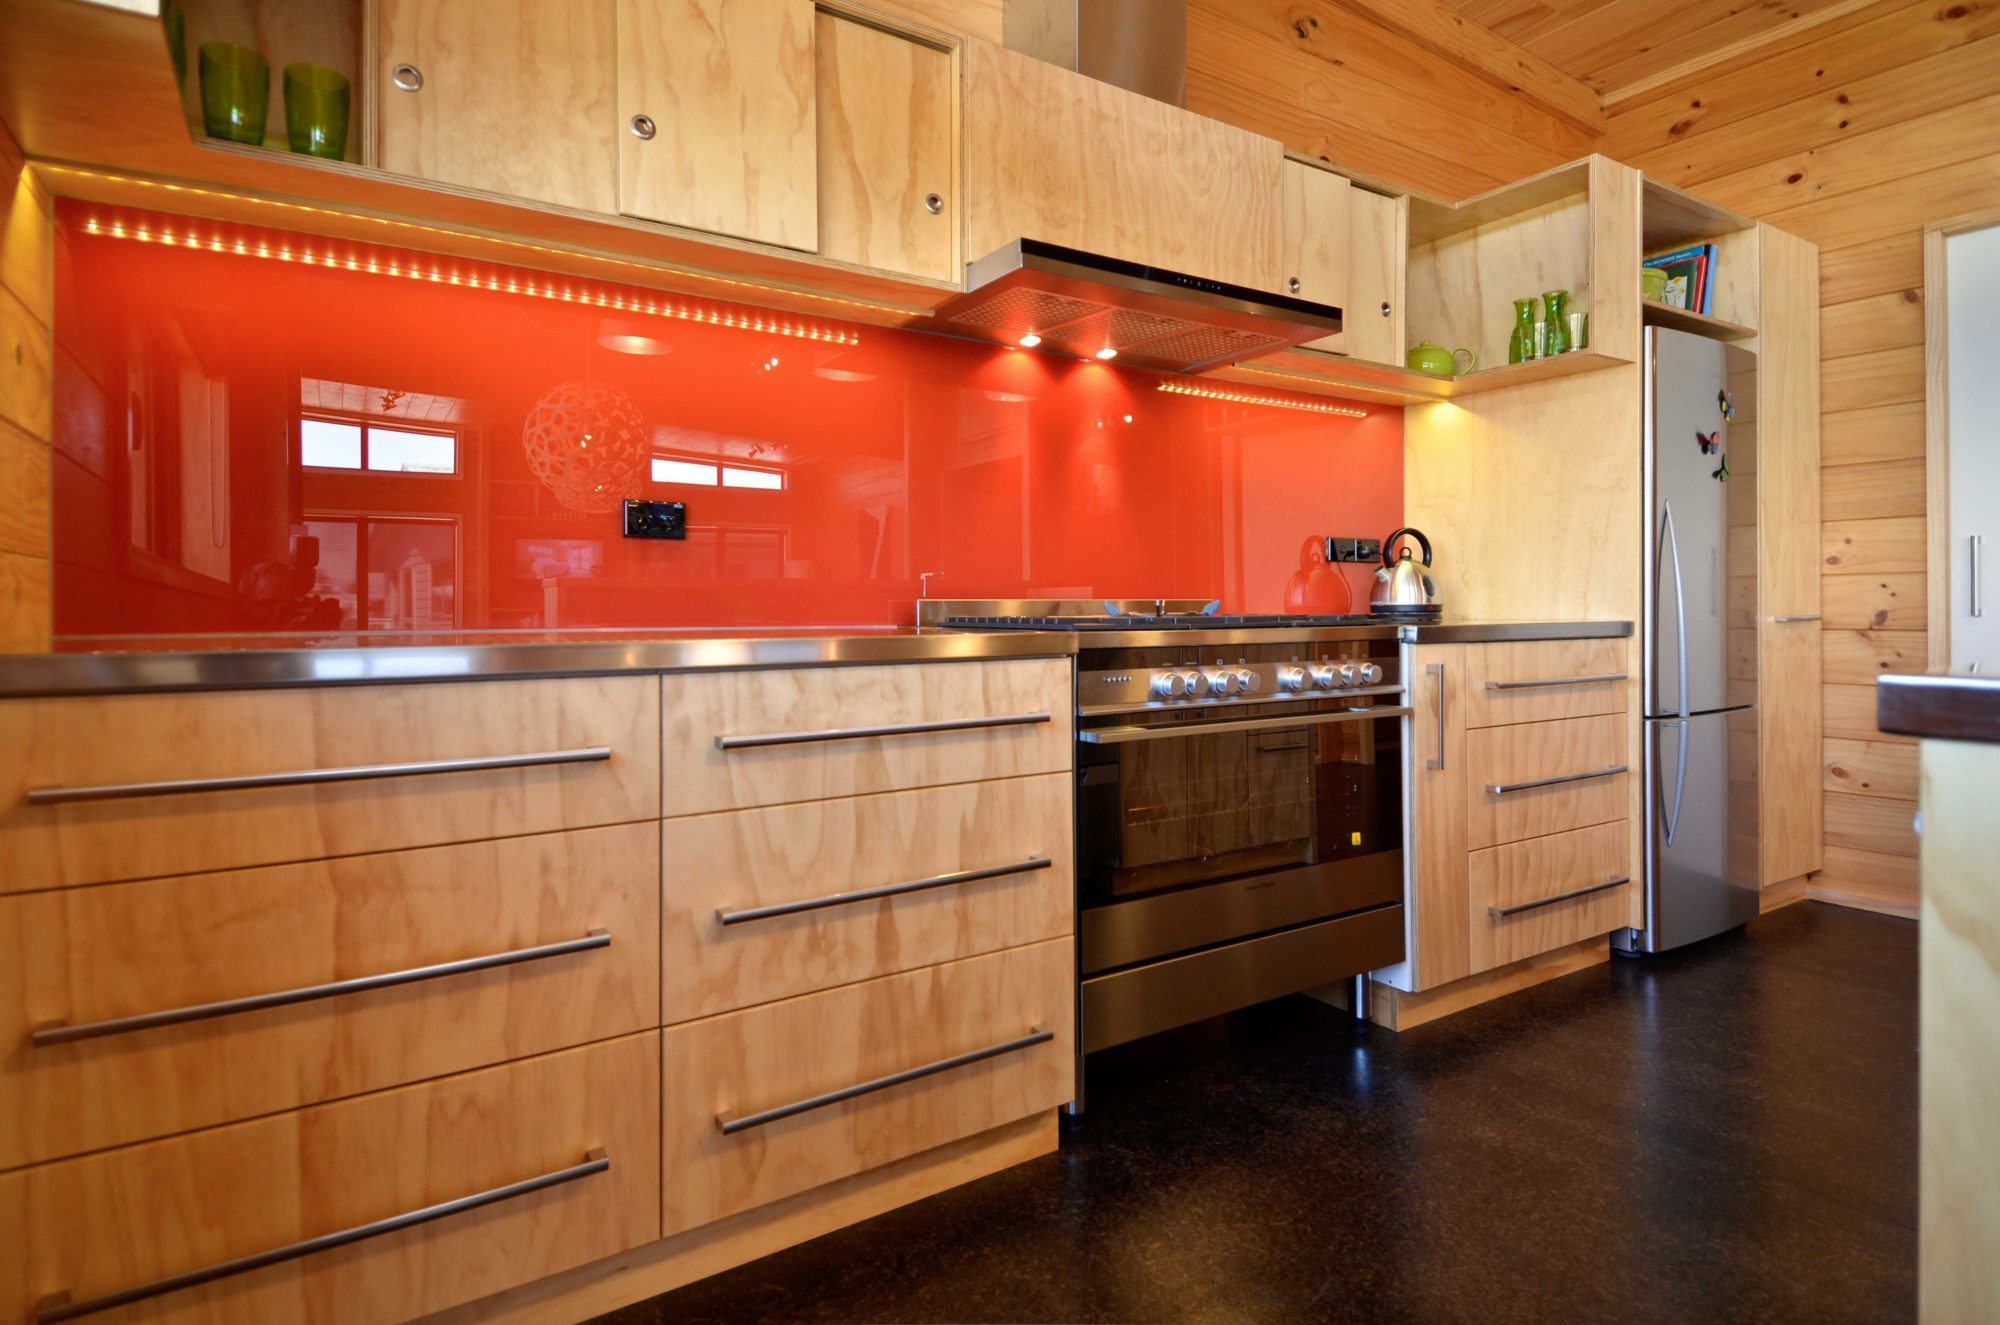 Kitchen with orange splash back